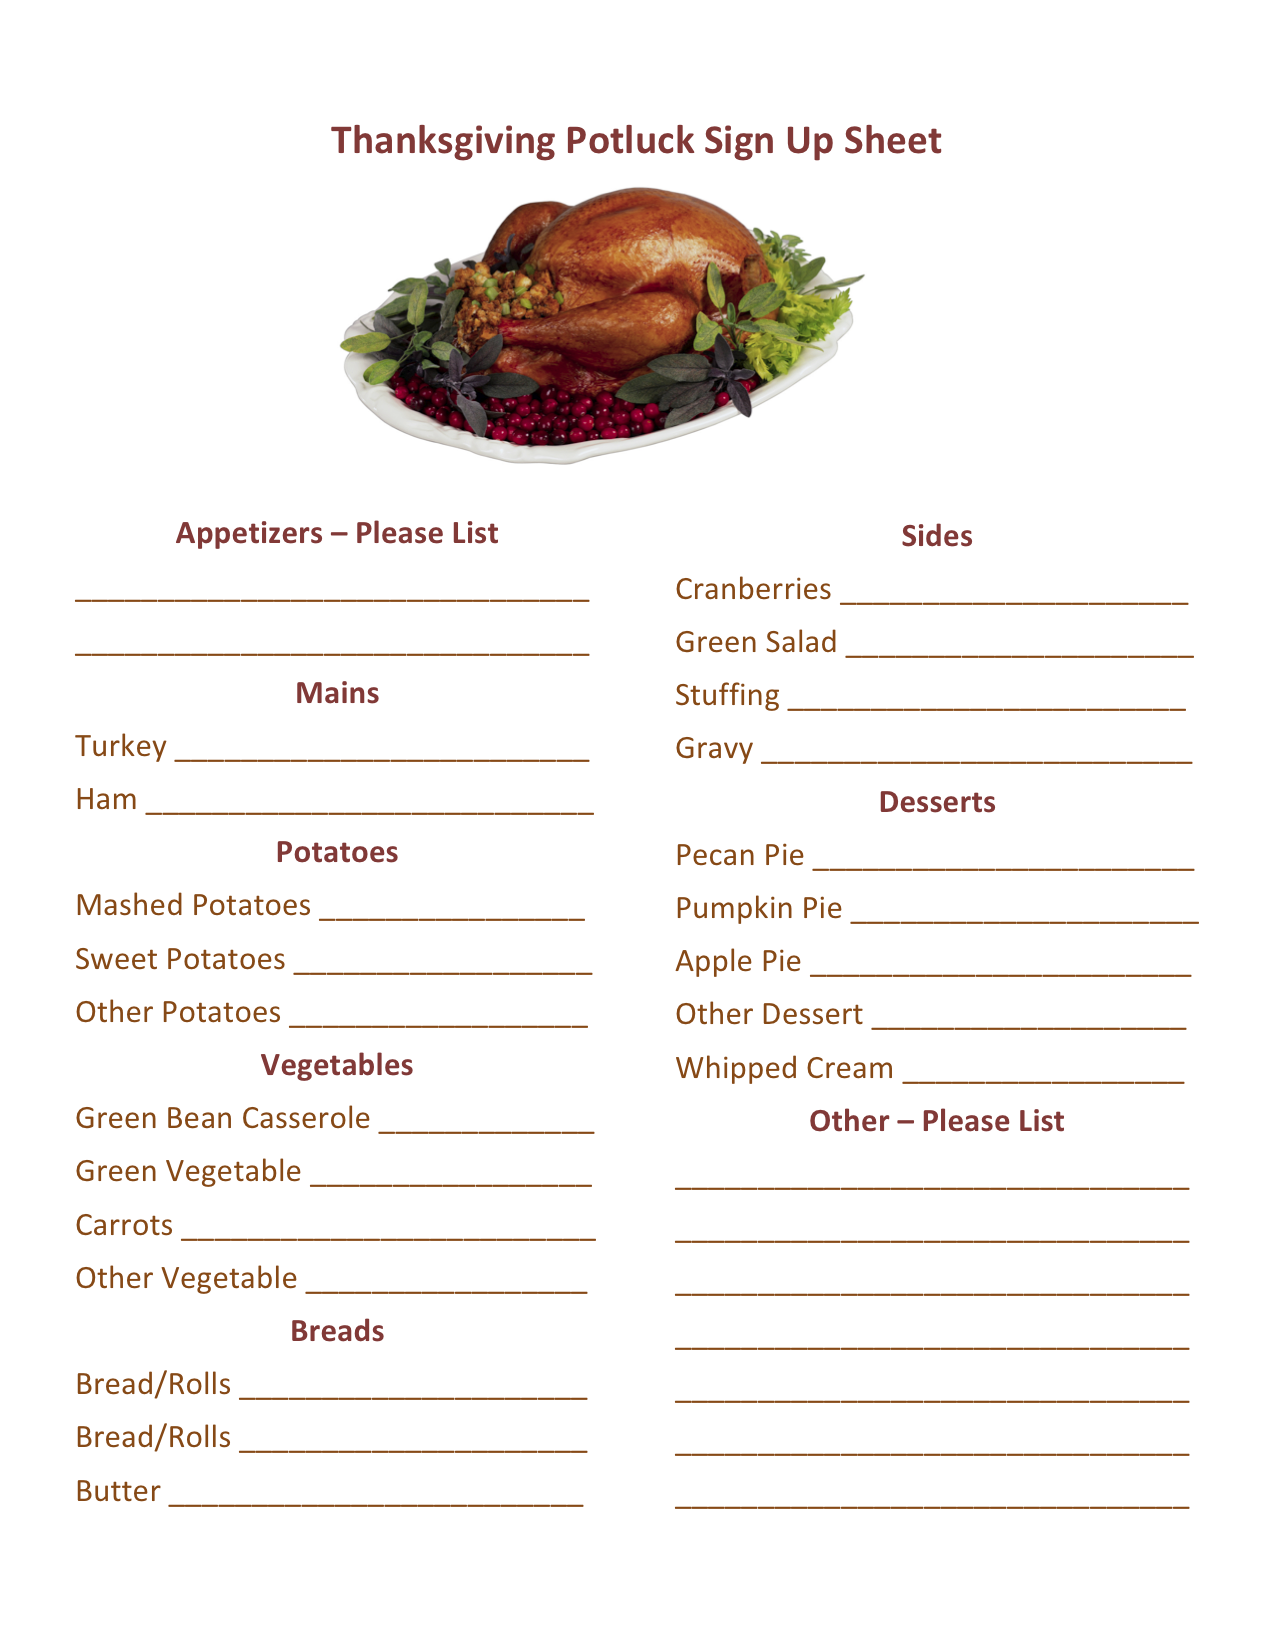 Potluck Sign Up Sheet Collection  Kiddo Shelter  Potluck Sign Up